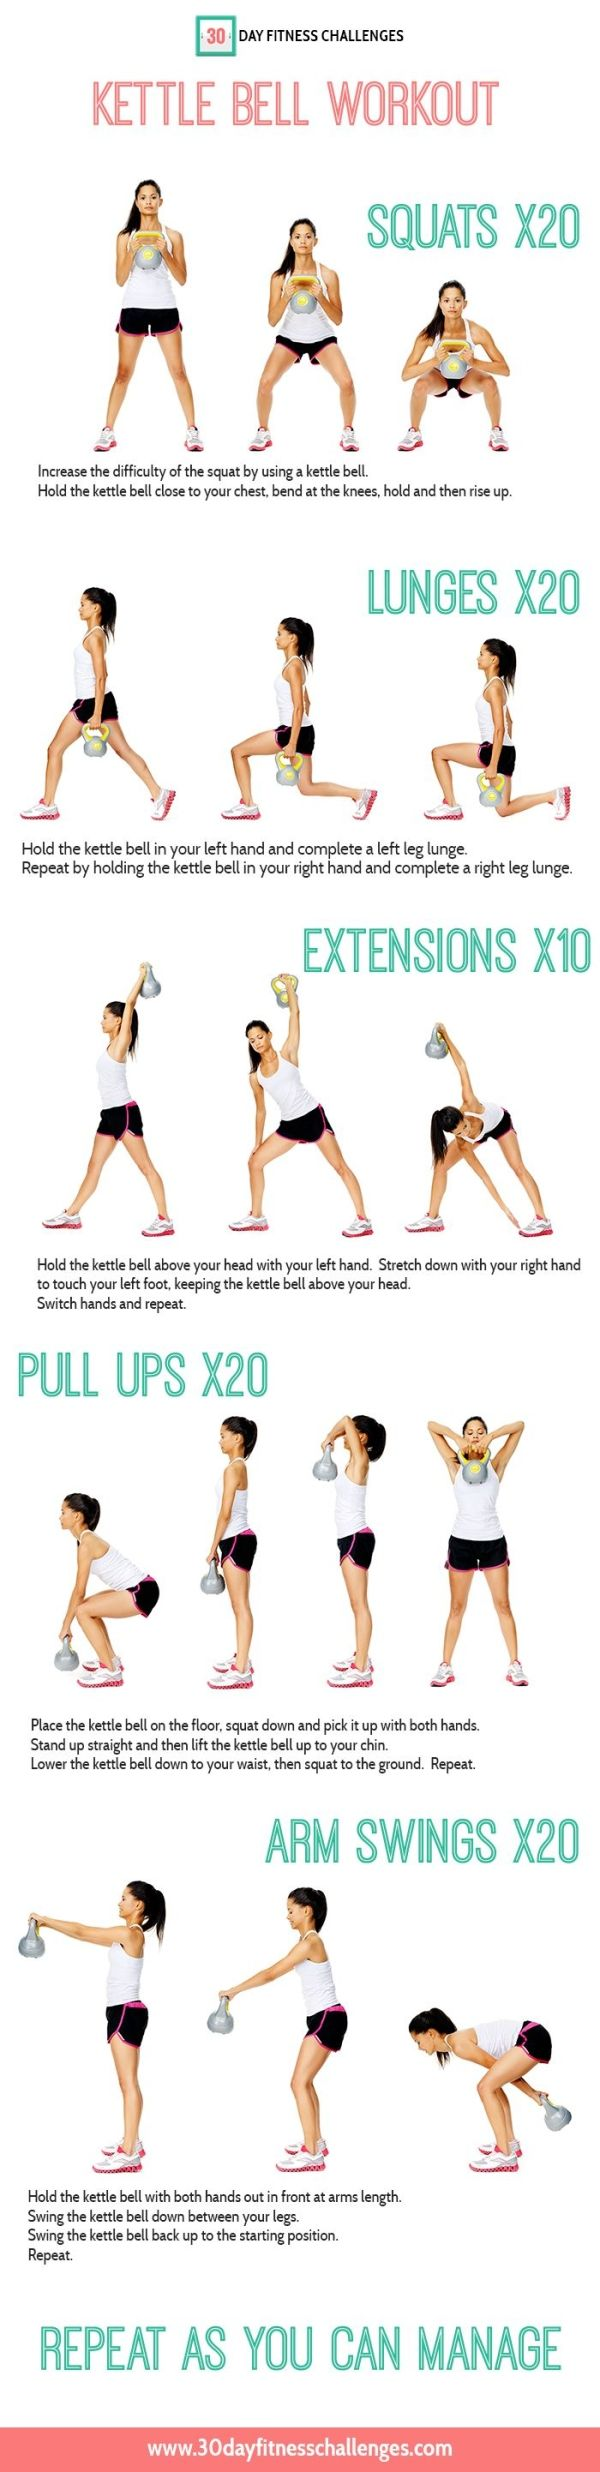 30 day Kettle Bell Workout Challenge Chart by lucile